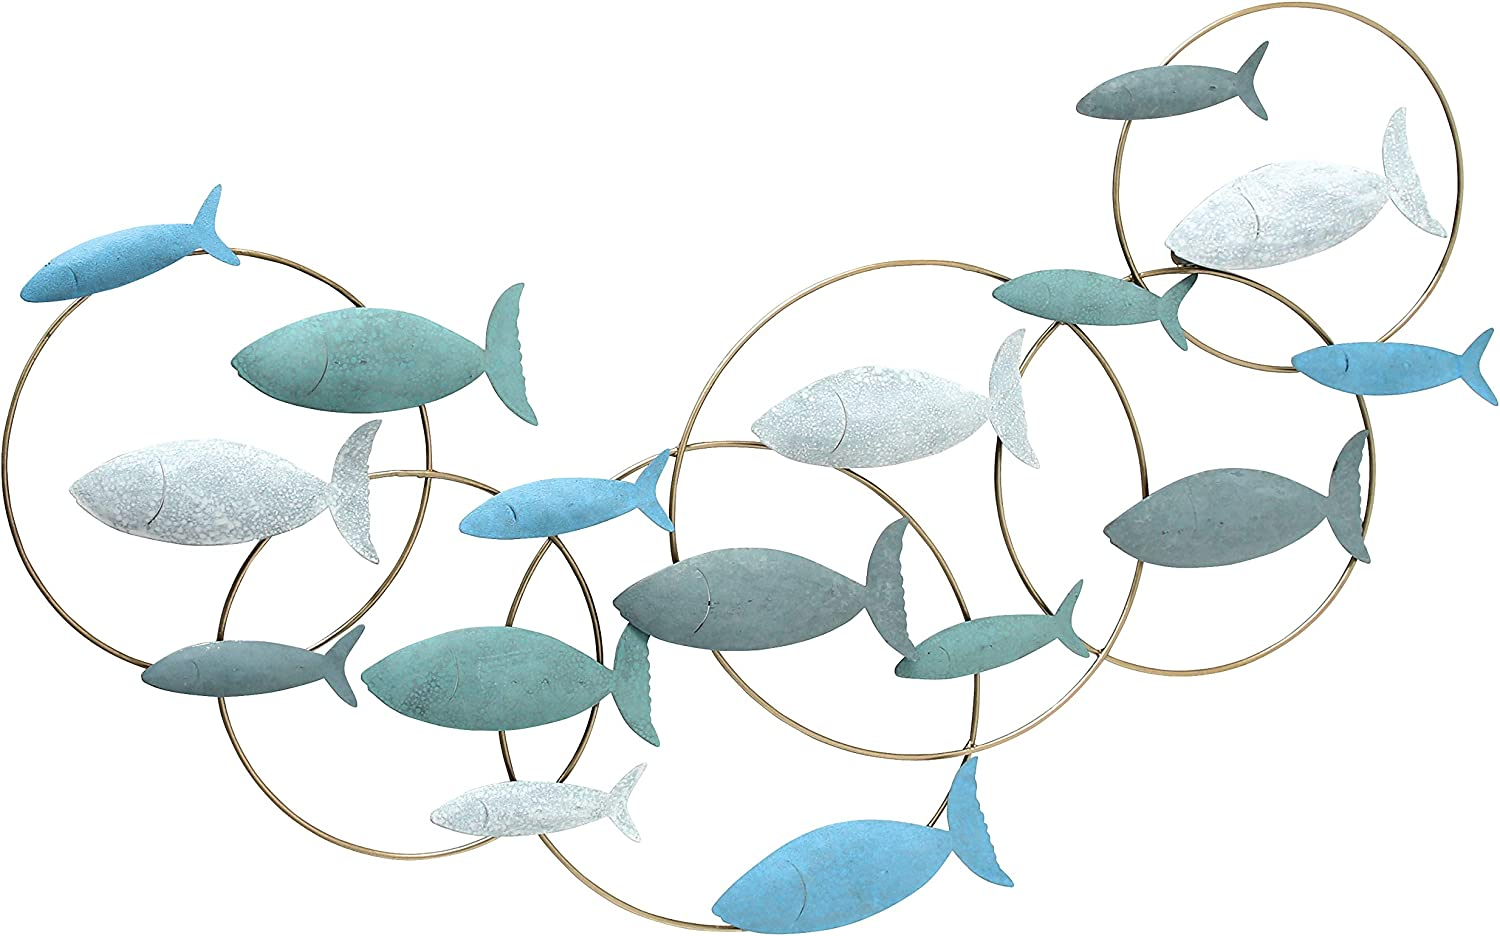 WHW Whole House Worlds School of Fish Metal Wall Decor Art, Turquoise, Teal, White, Grey and Gold, Made by Hand, Vintage Details, Iron, 35.5 Inches